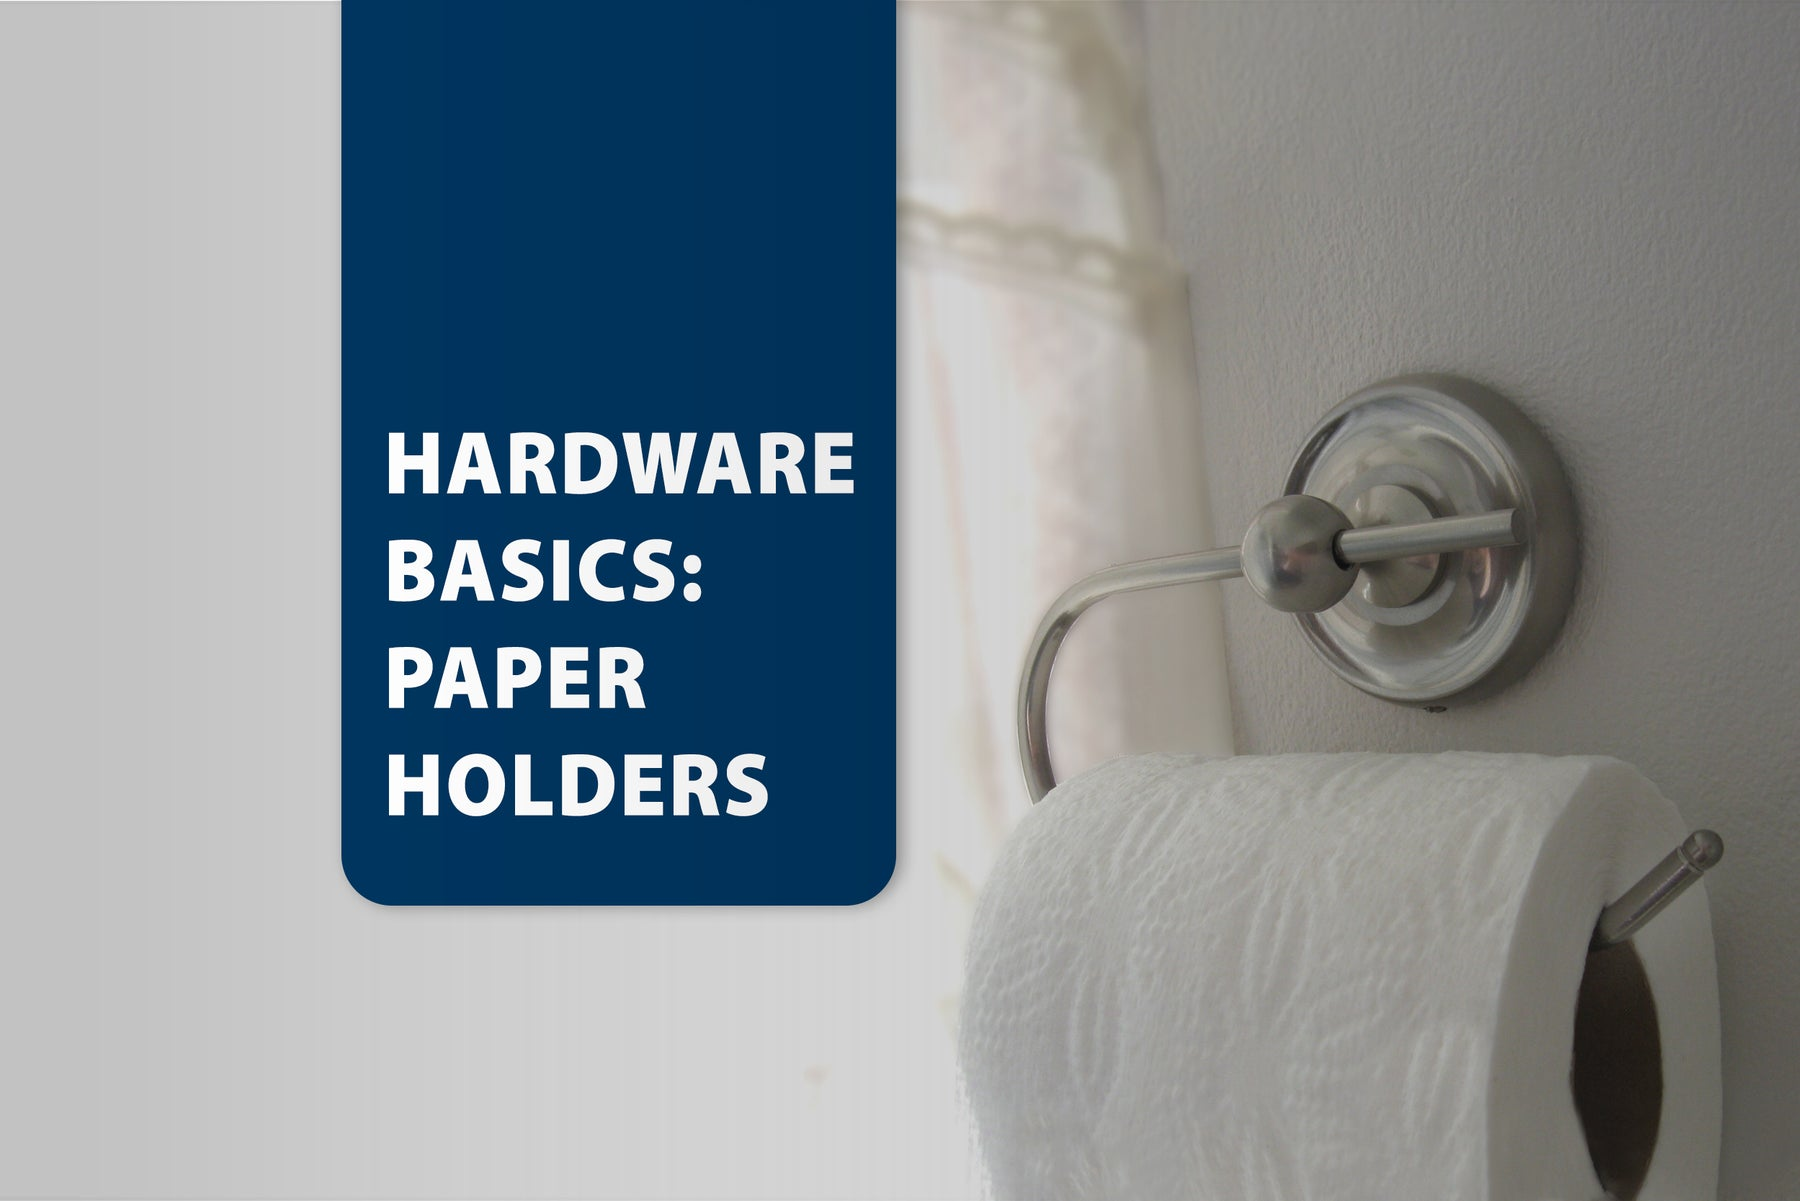 Hardware Basics: Paper Holders